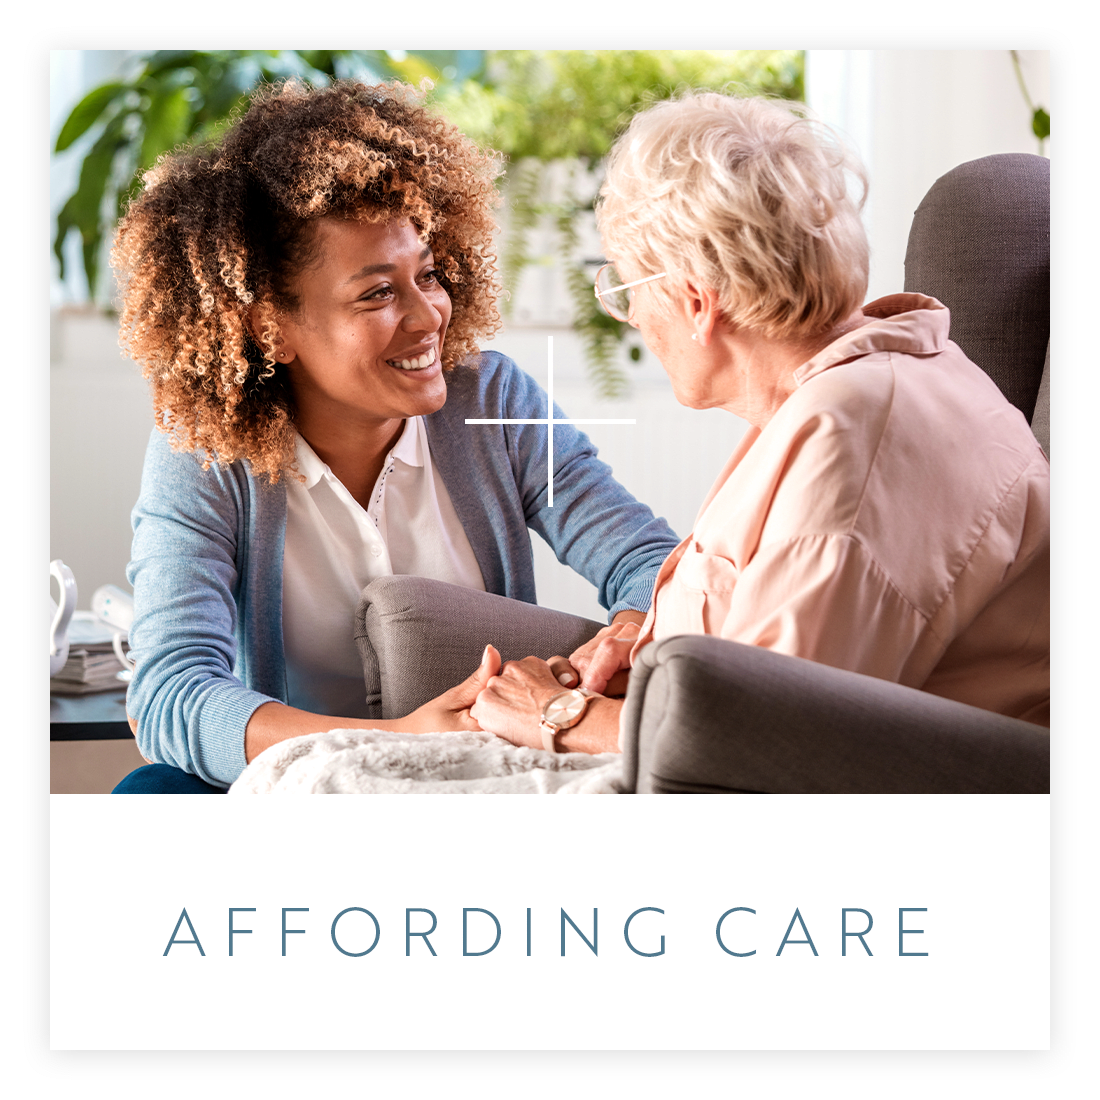 Learn about affording care at The Meridian at Waterways in Fort Lauderdale, Florida